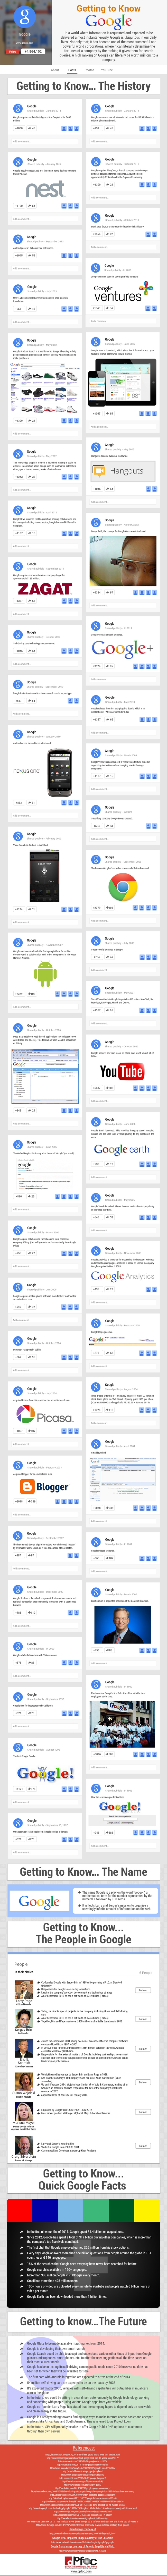 Getting to Know Google